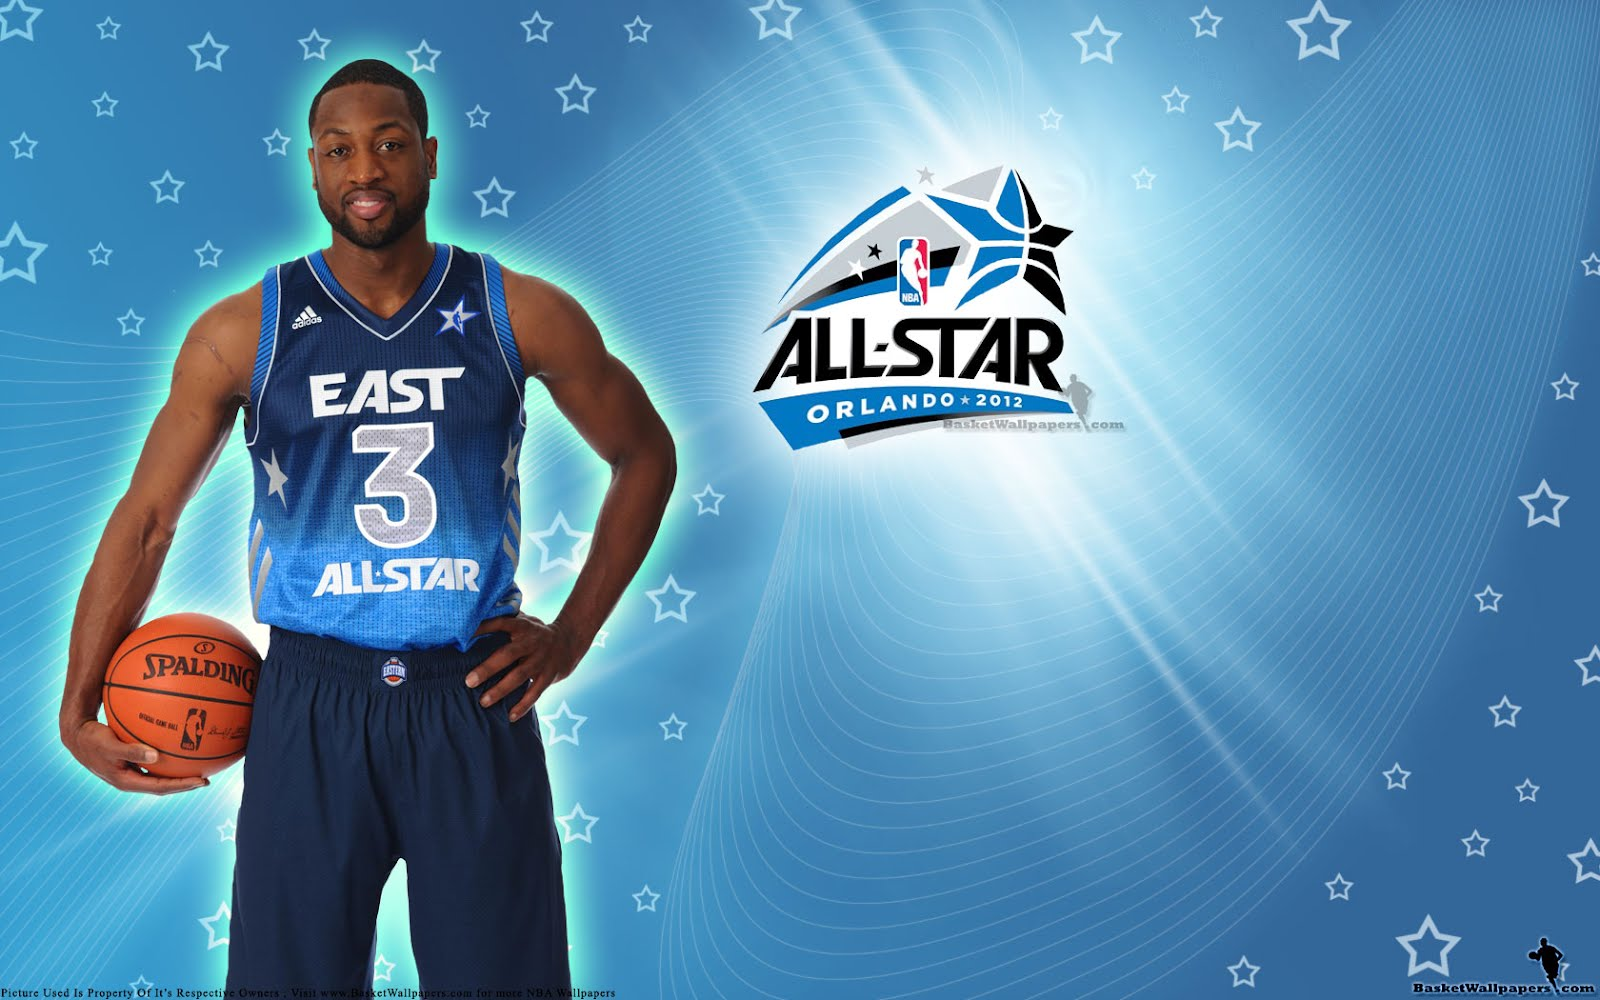 http://1.bp.blogspot.com/-8Azq_y2GR0U/Tz_FehIhdzI/AAAAAAAAPkw/mkQcmVWXOhA/s1600/2012-NBA-All-Star-Dwyane-Wade-Wallpaper-BasketWallpapers.com-.jpg